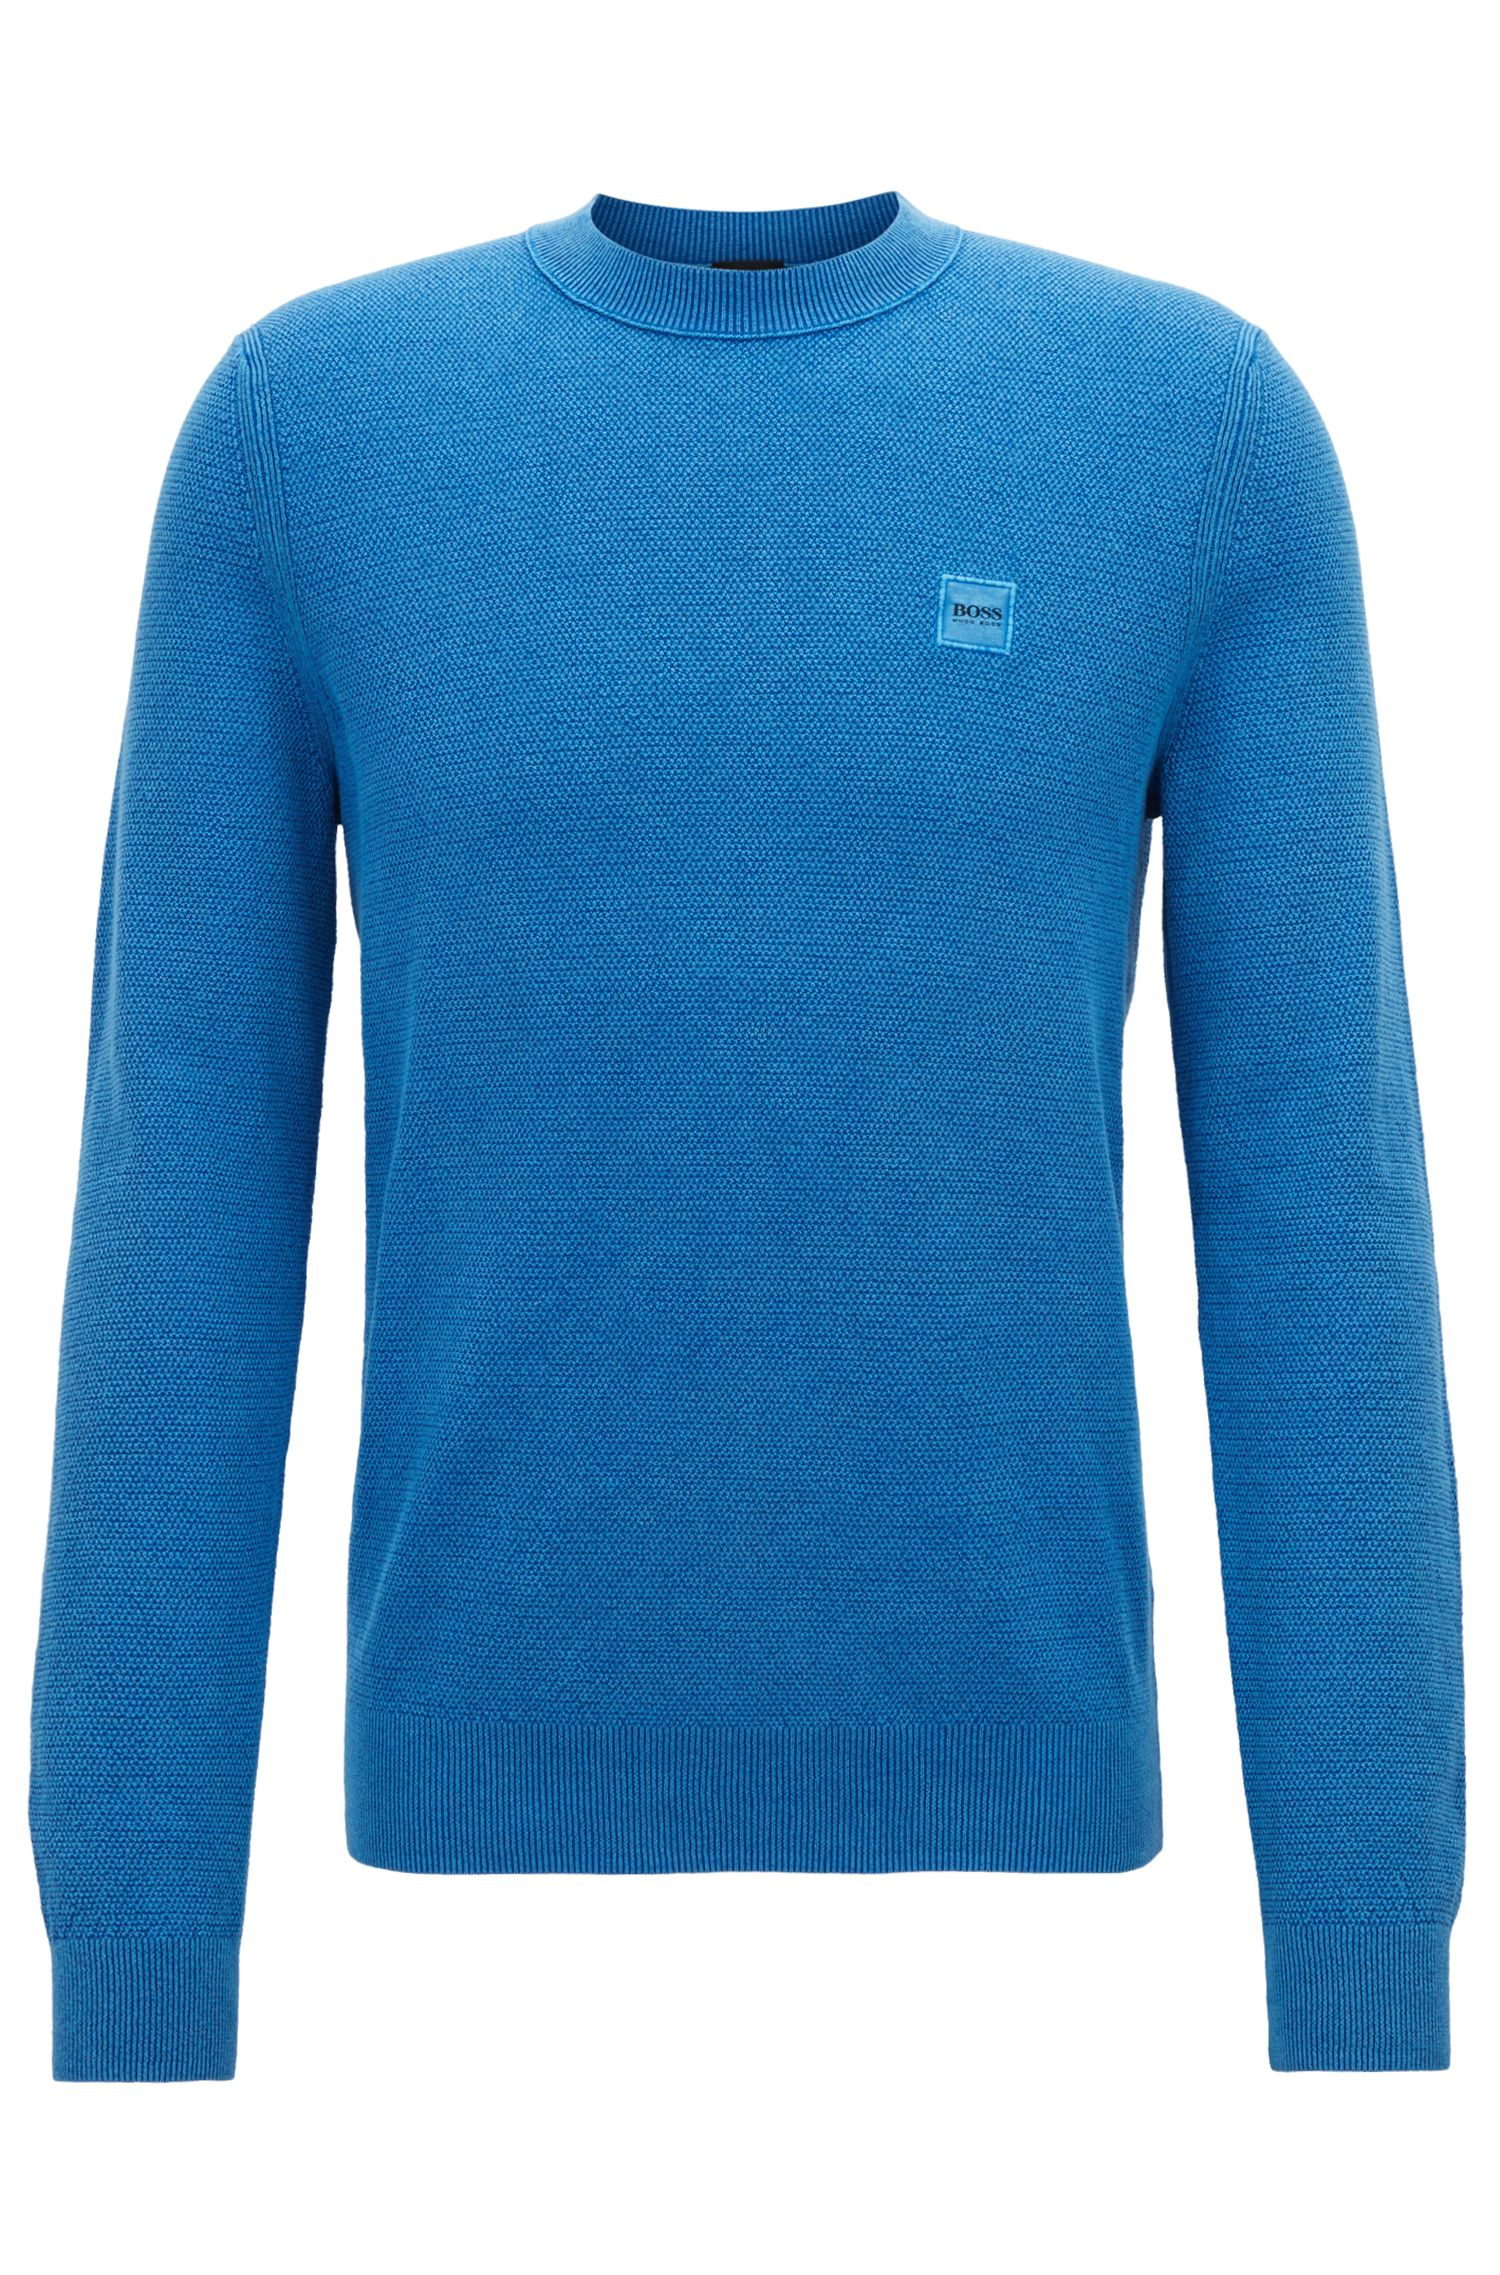 Cotton crew-neck sweater with all-over texture, Blue